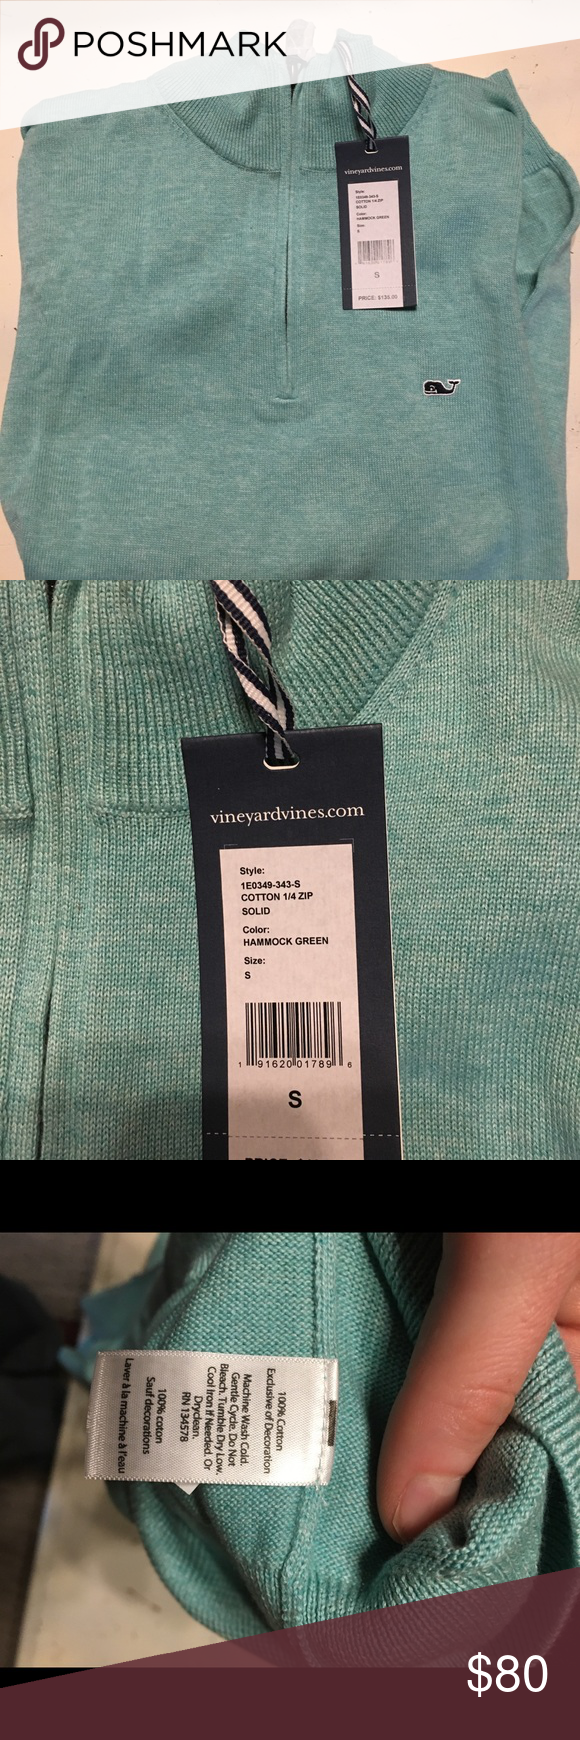 Vineyard vines cotton zip nwt nwt in my posh picks